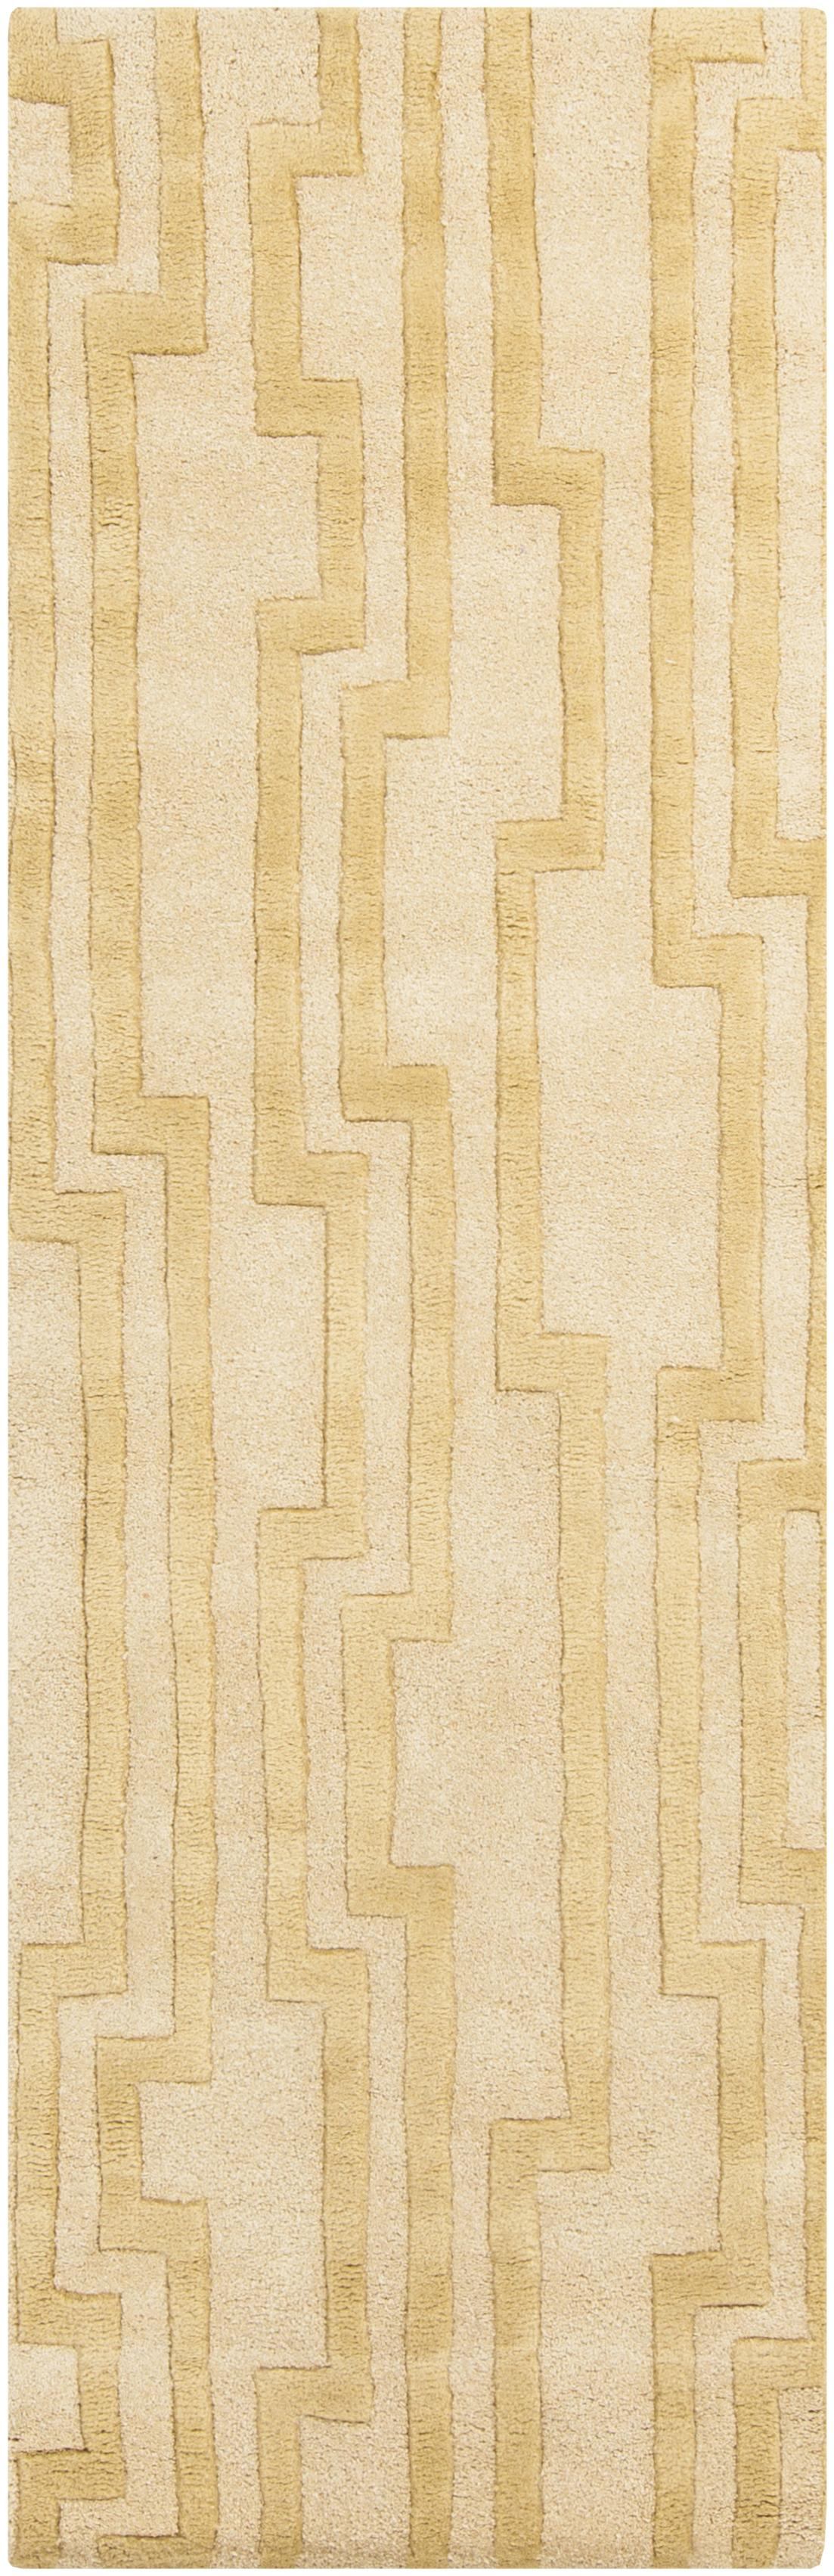 "Surya Rugs Modern Classics 2'6"" x 8' - Item Number: CAN2020-268"